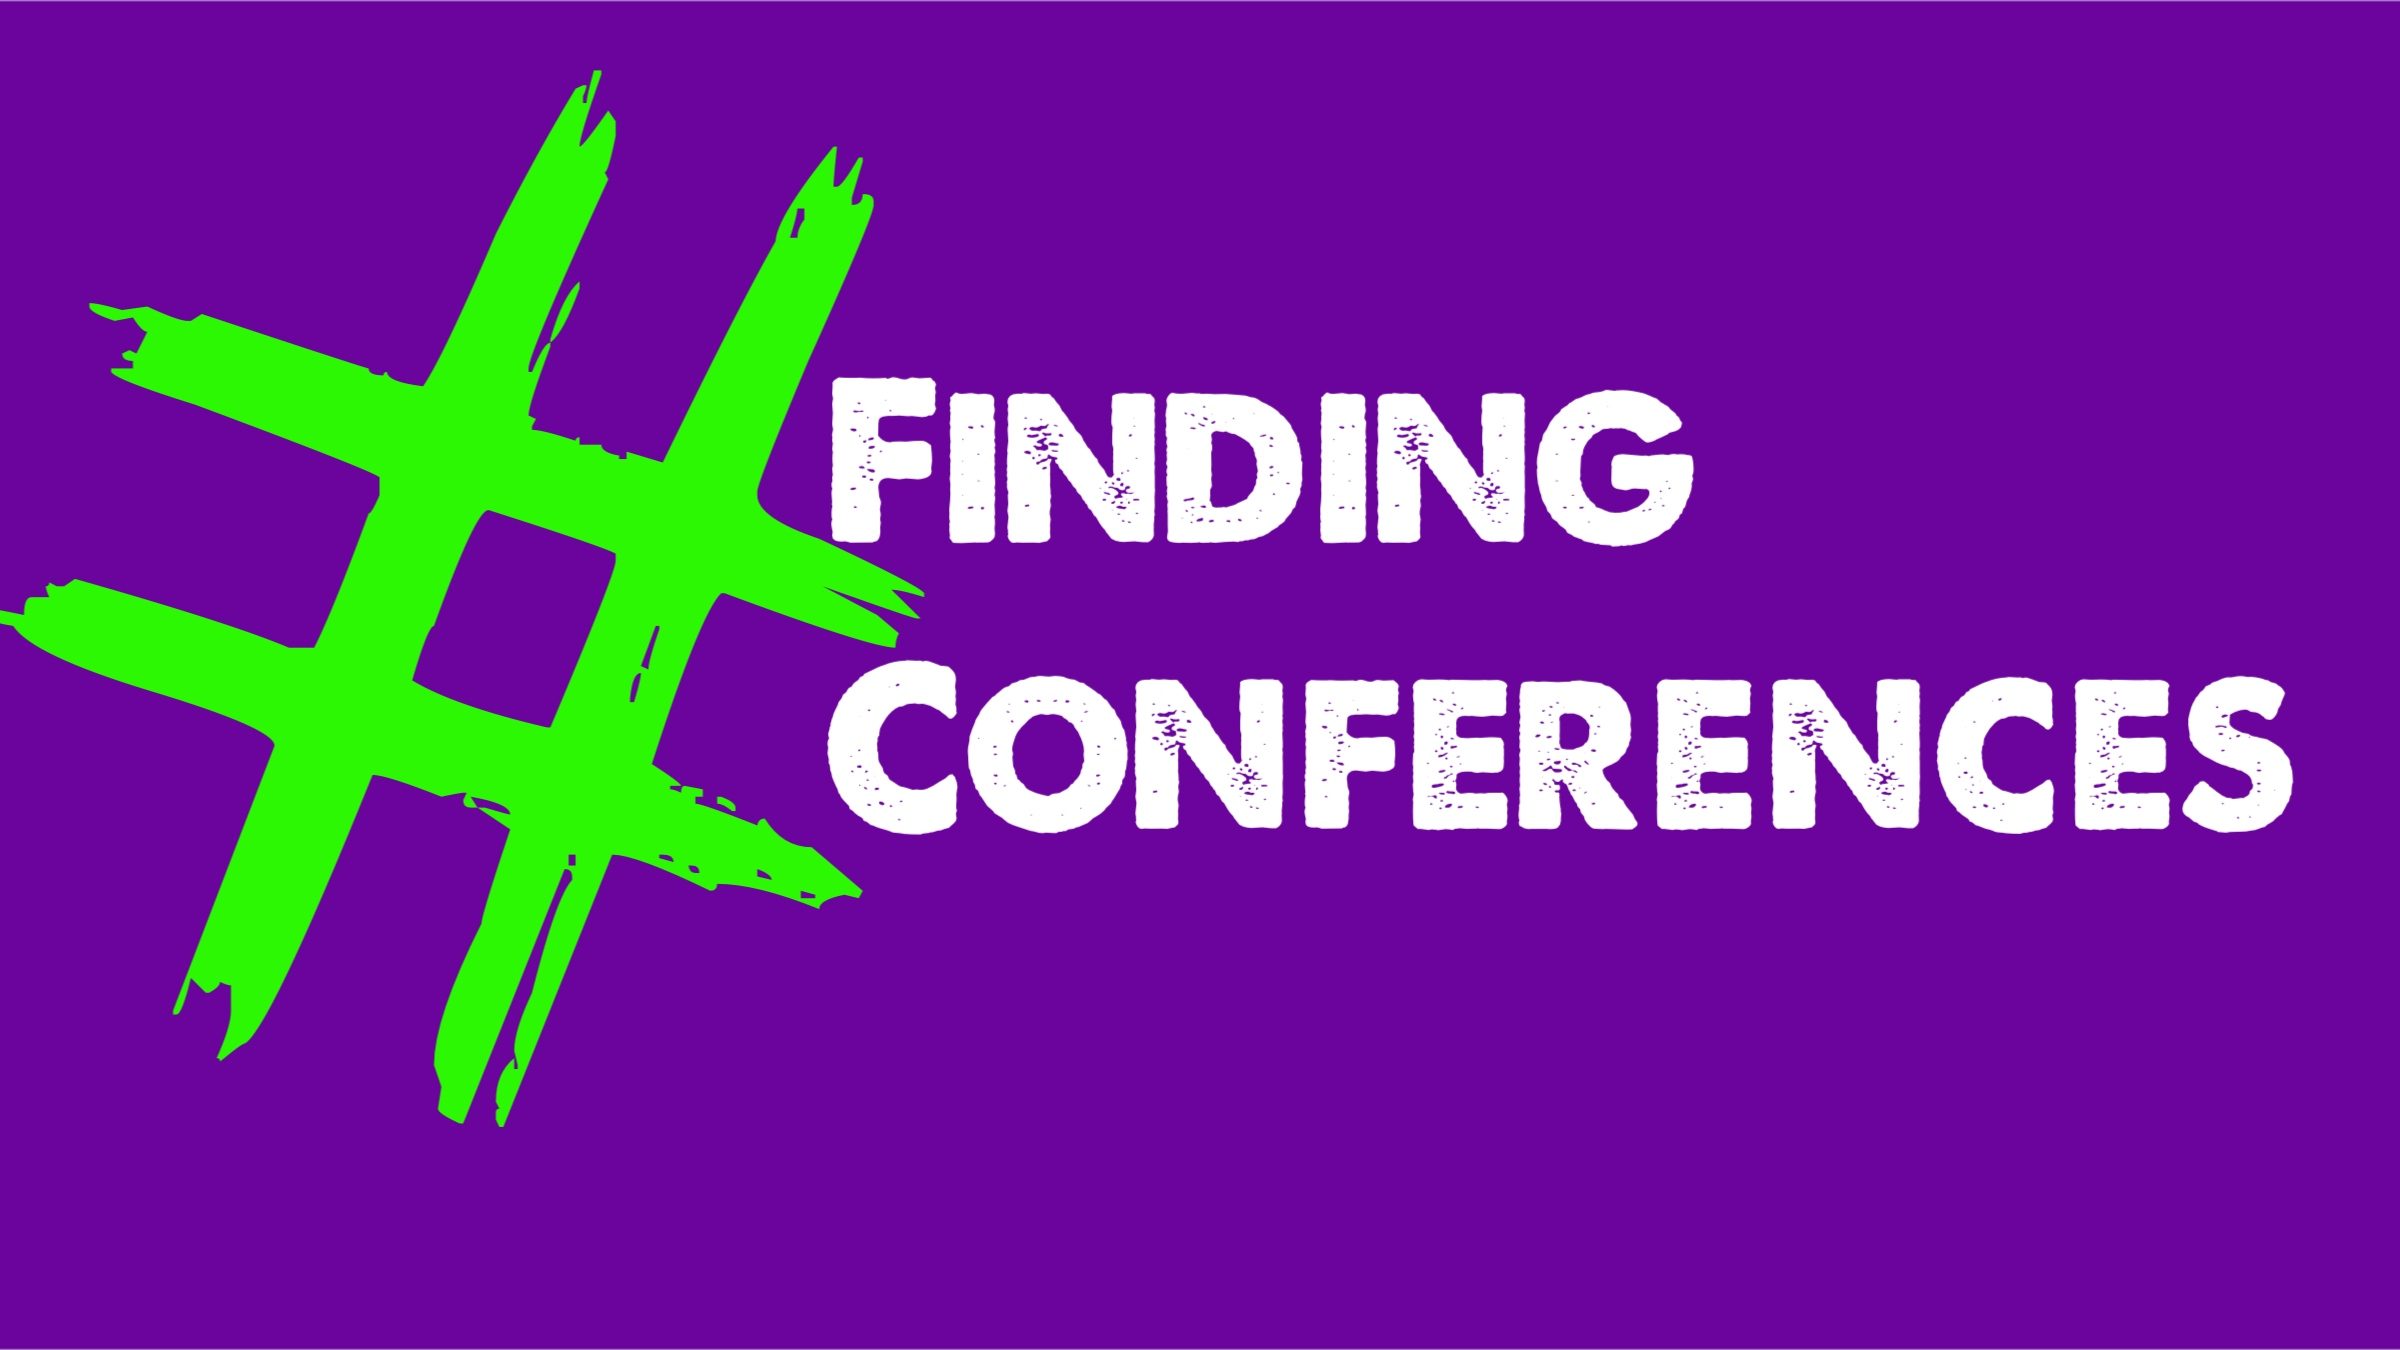 A Simple Way To Find Conferences…Using Hashtags